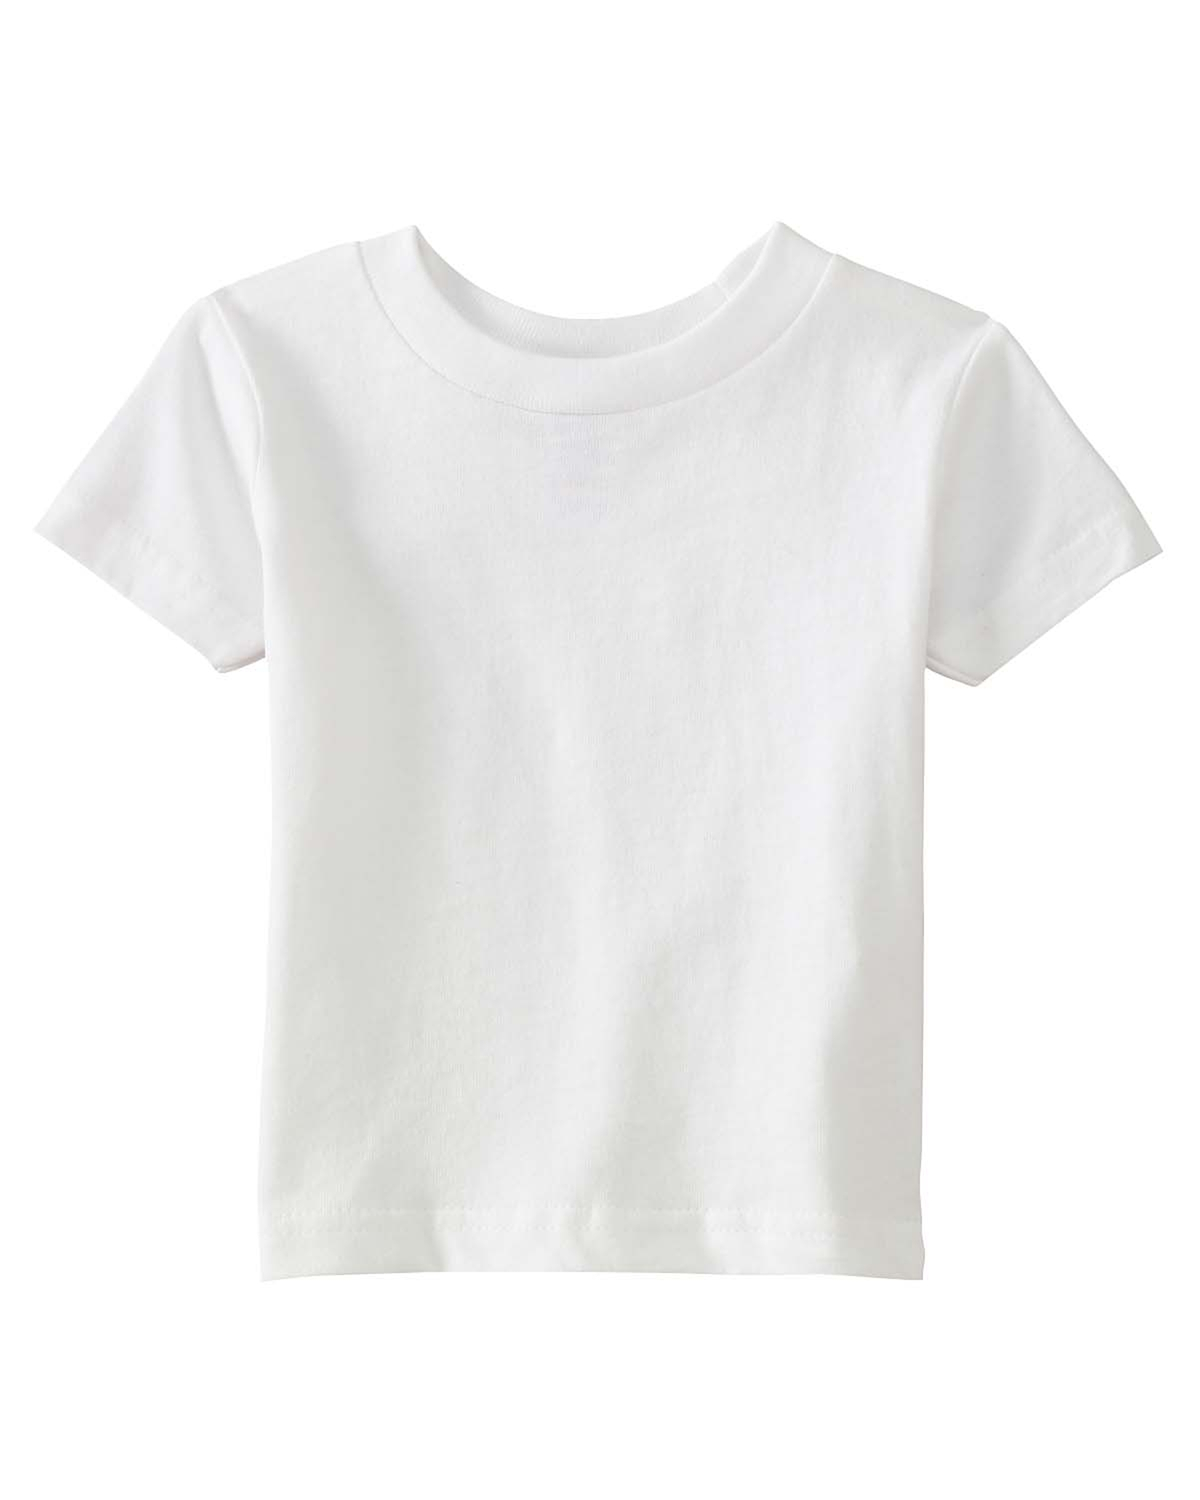 Rabbit Skins 3401 Infant Short Sleeve Cotton T-Shirt